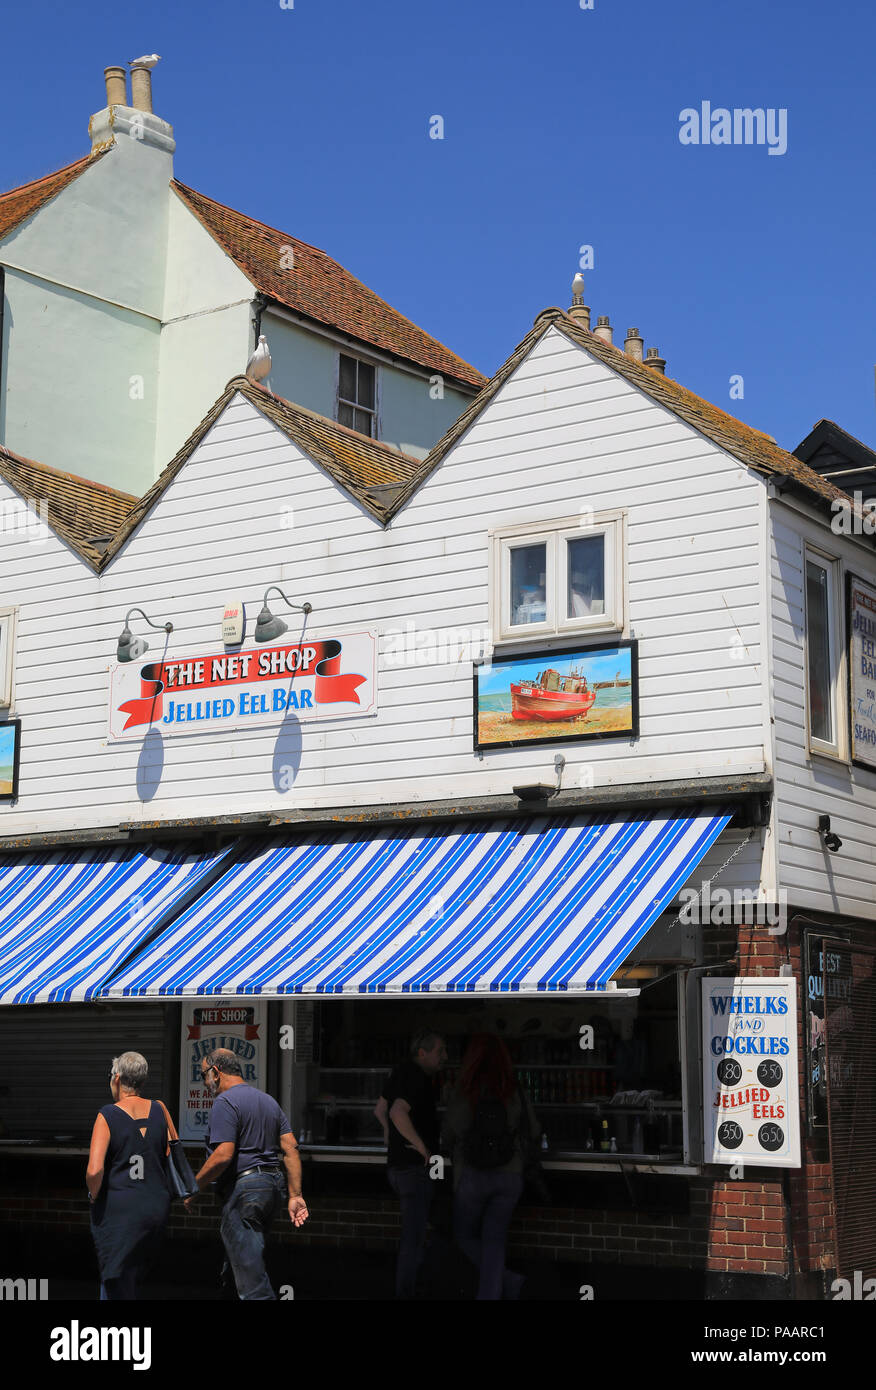 The Jellied Eels Bar,in the Net Shop, selling whelks, cockles and eels, on Hastings harbour, in East Sussex, UK - Stock Image